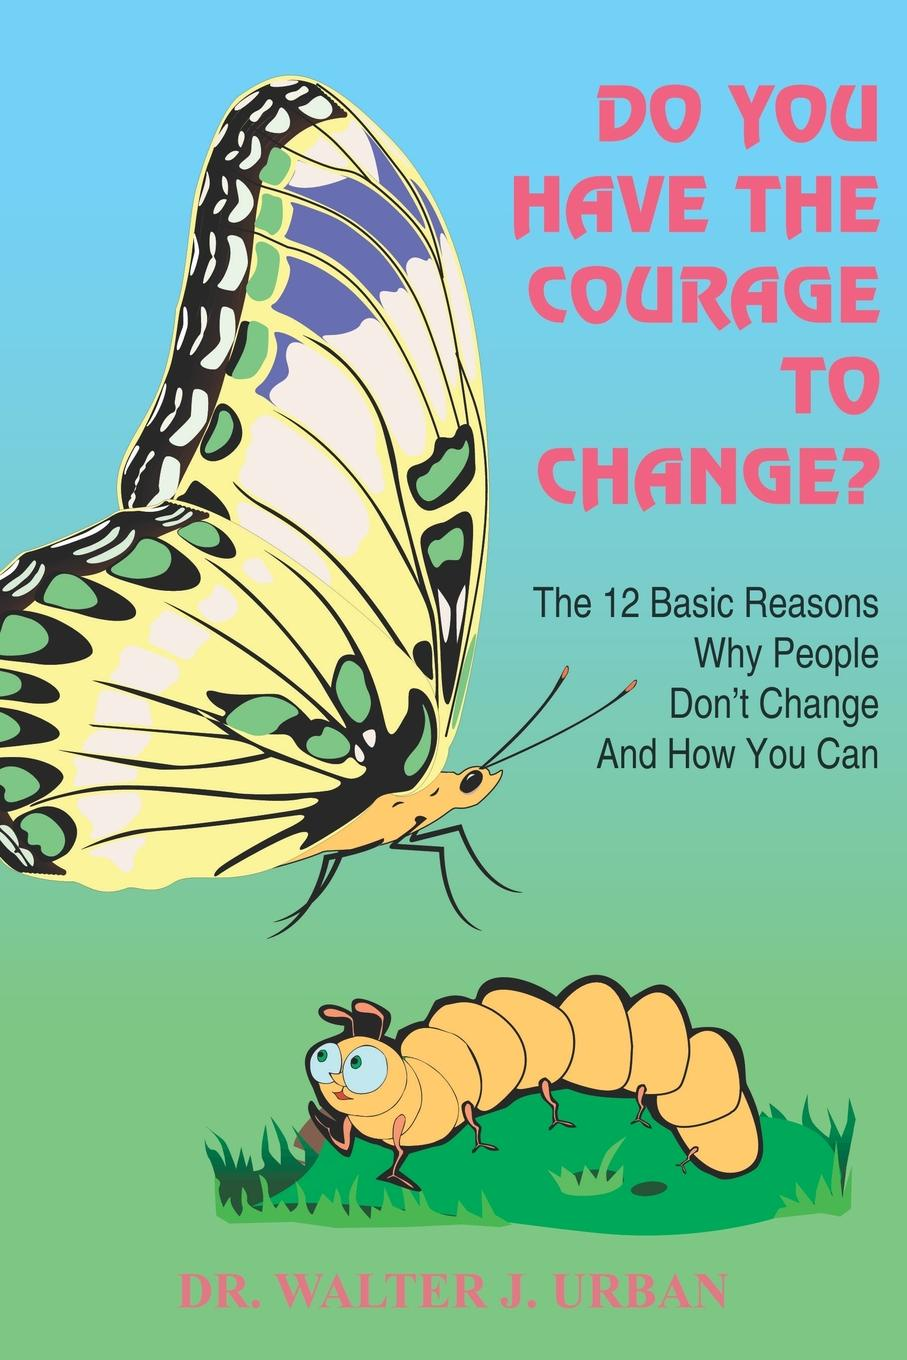 Walter J. Urban, Dr Walter J. Urban Do You Have the Courage to Change?. The 12 Basic Reasons Why People Don't Change and How You Can dave ulrich why the bottom line isn t how to build value through people and organization